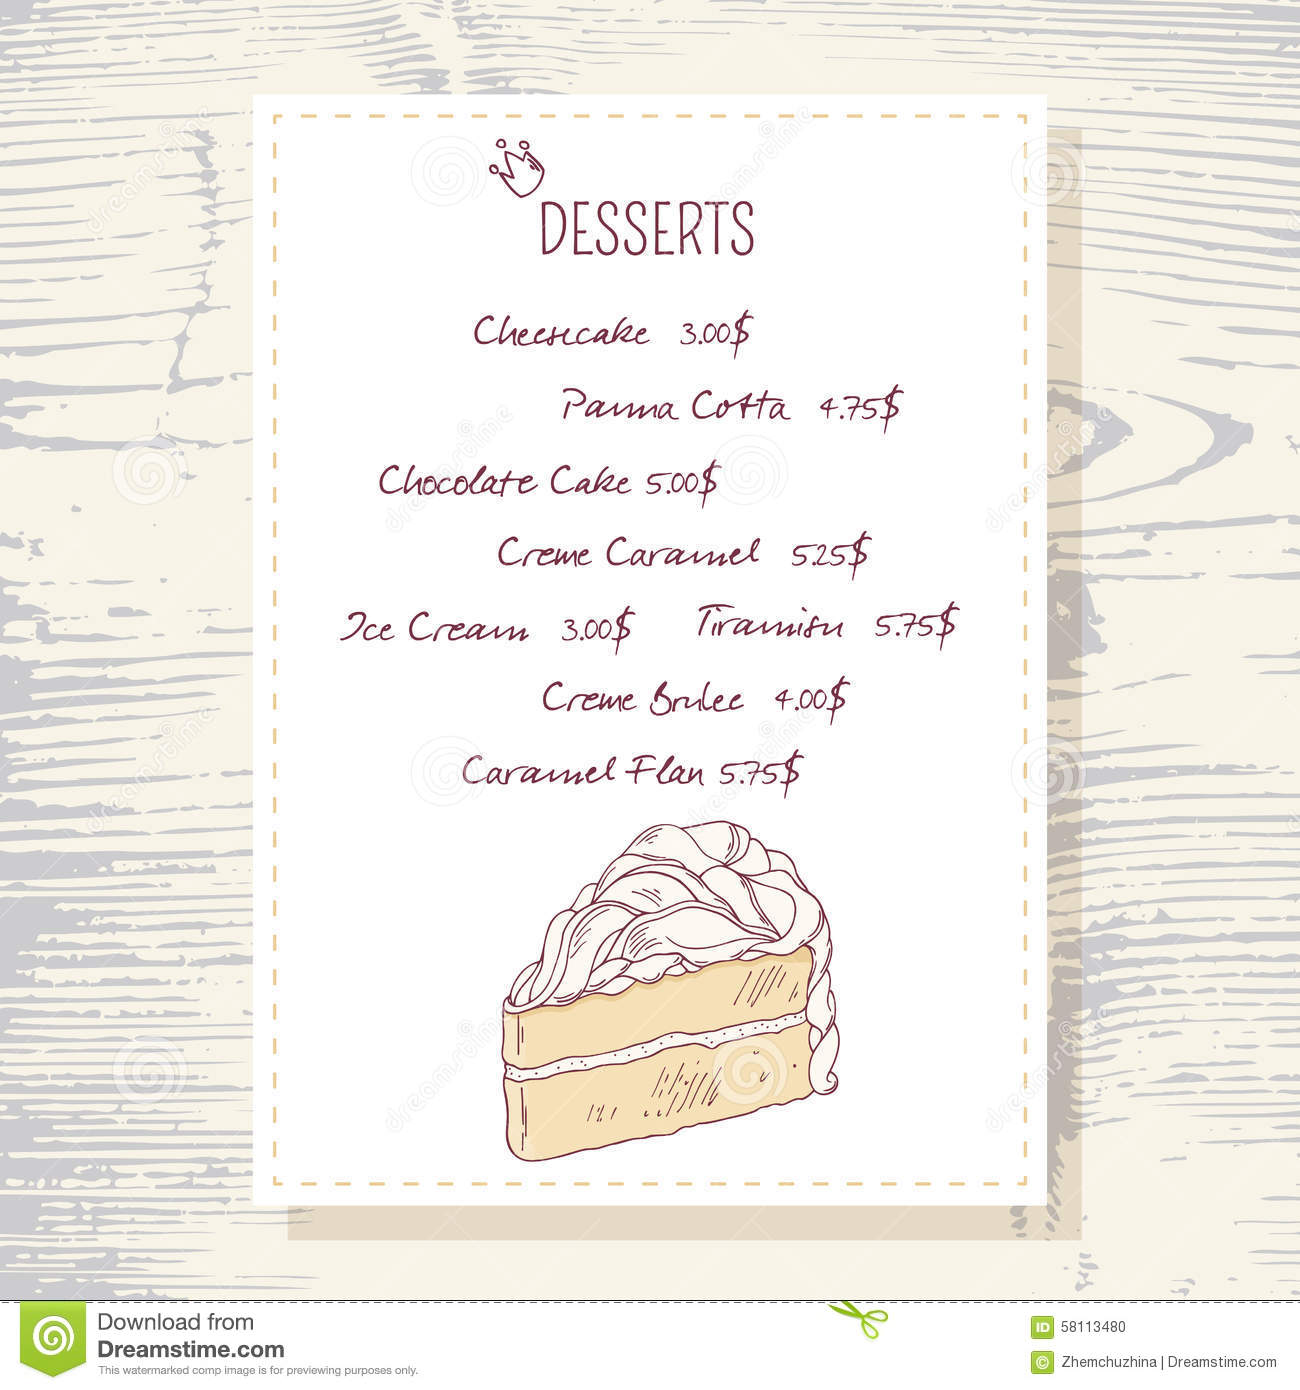 Dessert Menu Template With Sweet Vanilla Cake Stock Vector - Image ...